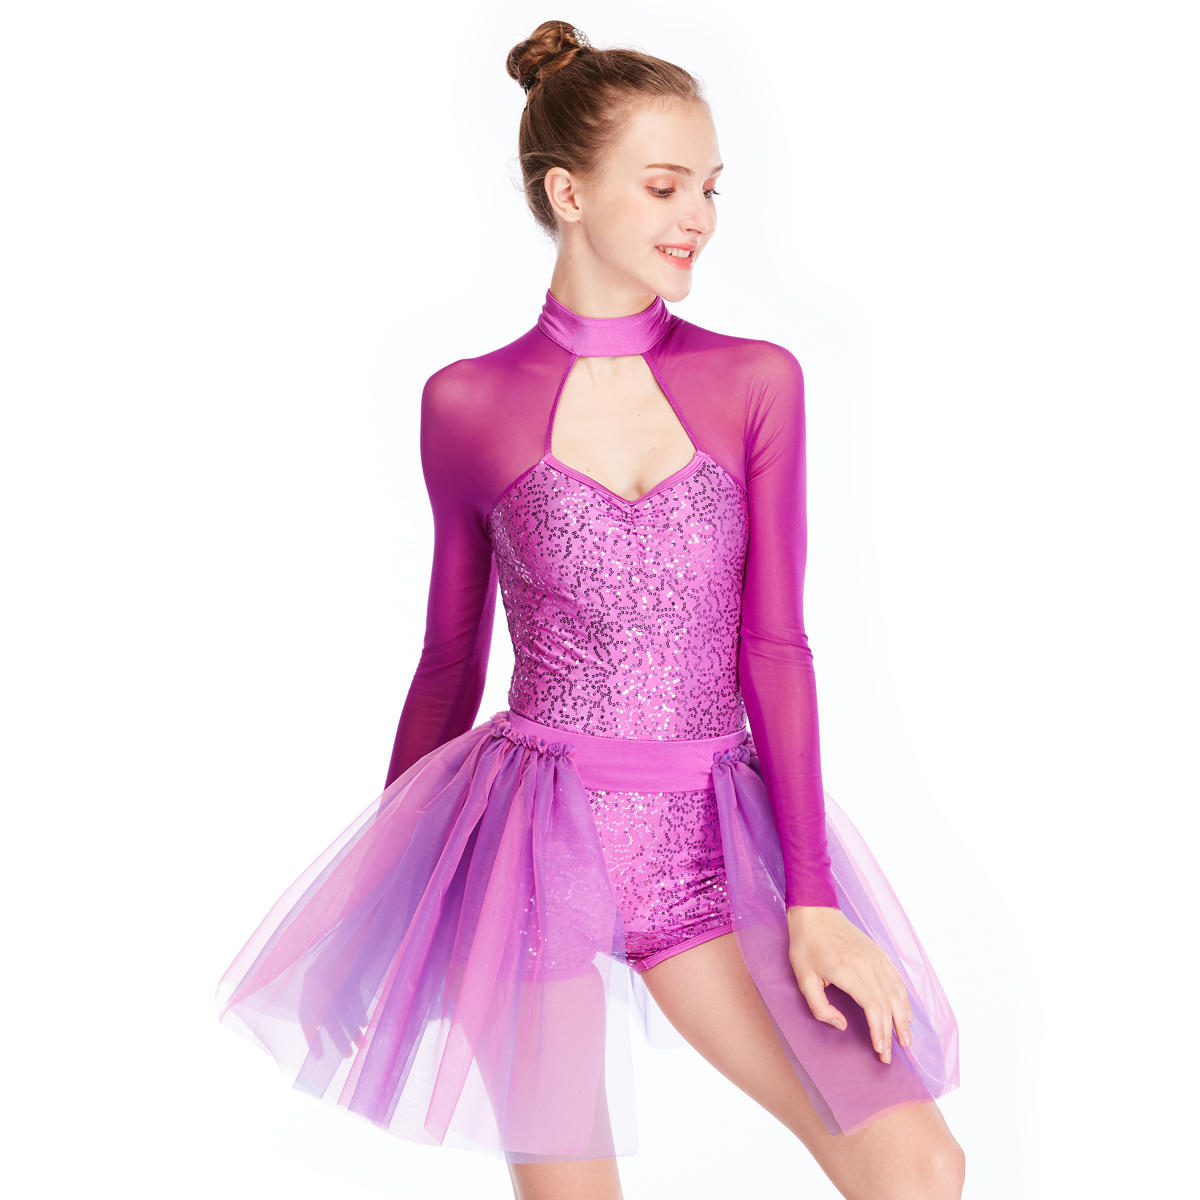 MiDee Sequins Dance Costumes Contemporary Costume Biketard Competition Clothing Performance Wear